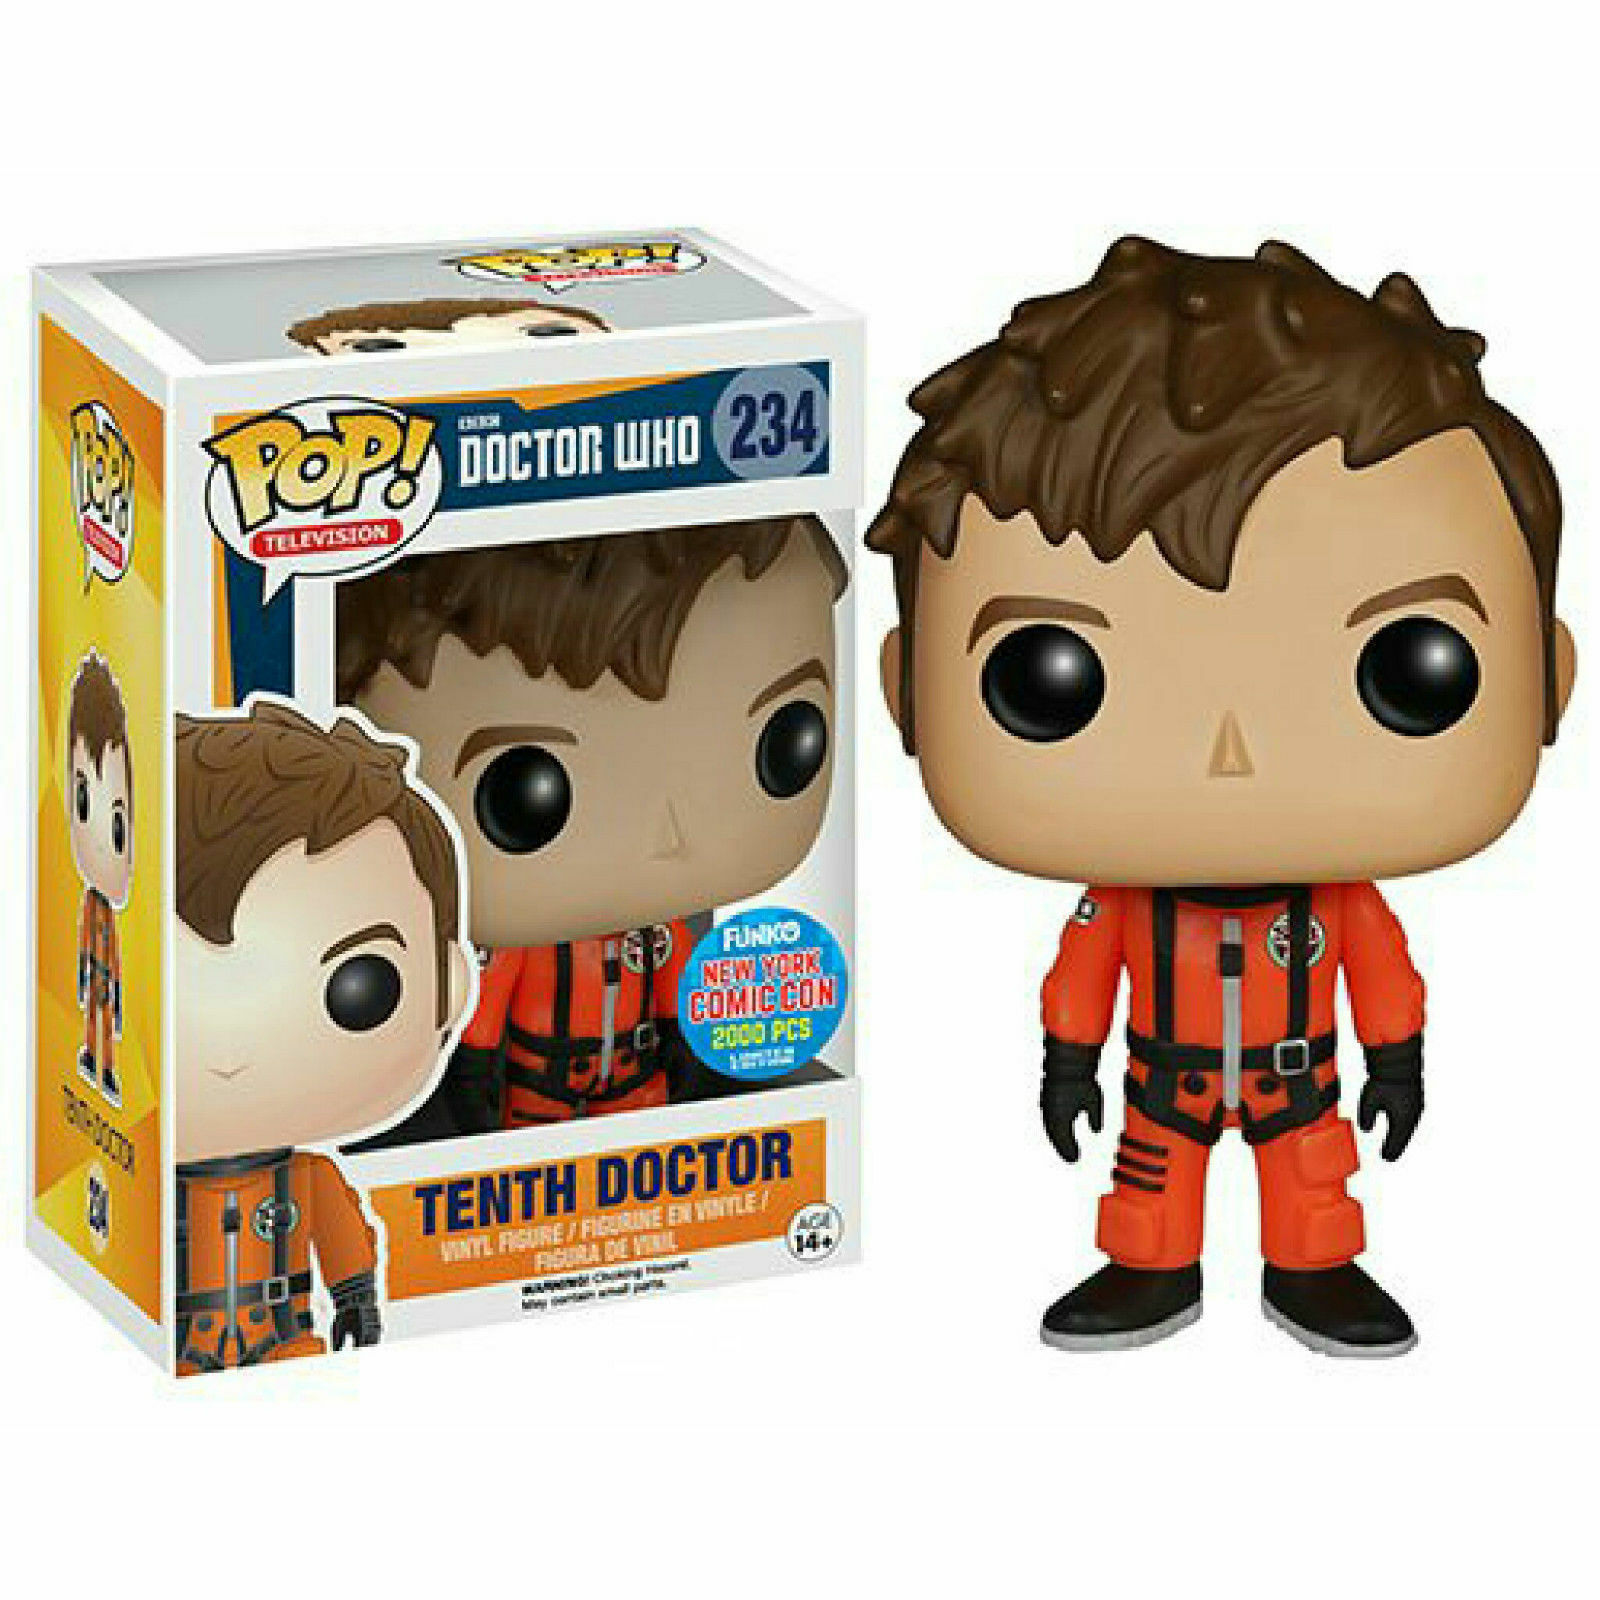 Funko Pop - Doctor Who Tenth Doctor in Spacesuit NYCC Exclusive - NEW NEUF